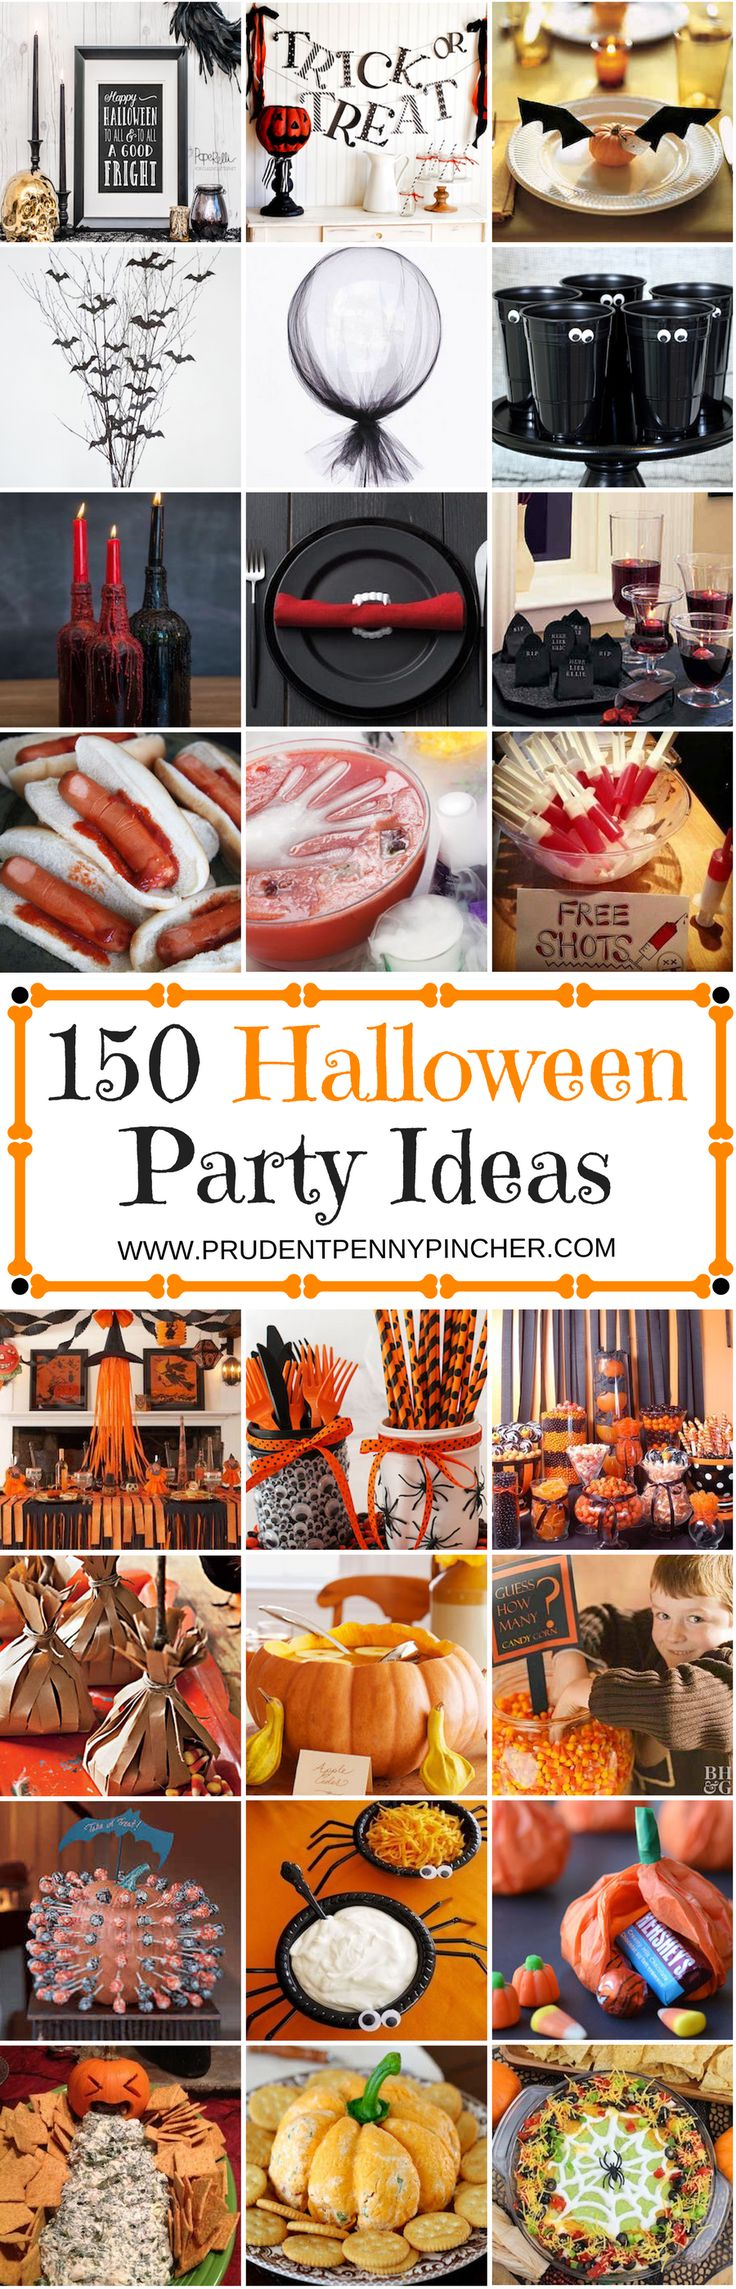 clever halloween party names the 25 best halloween party ideas ideas on pinterest halloween - Names For A Halloween Party